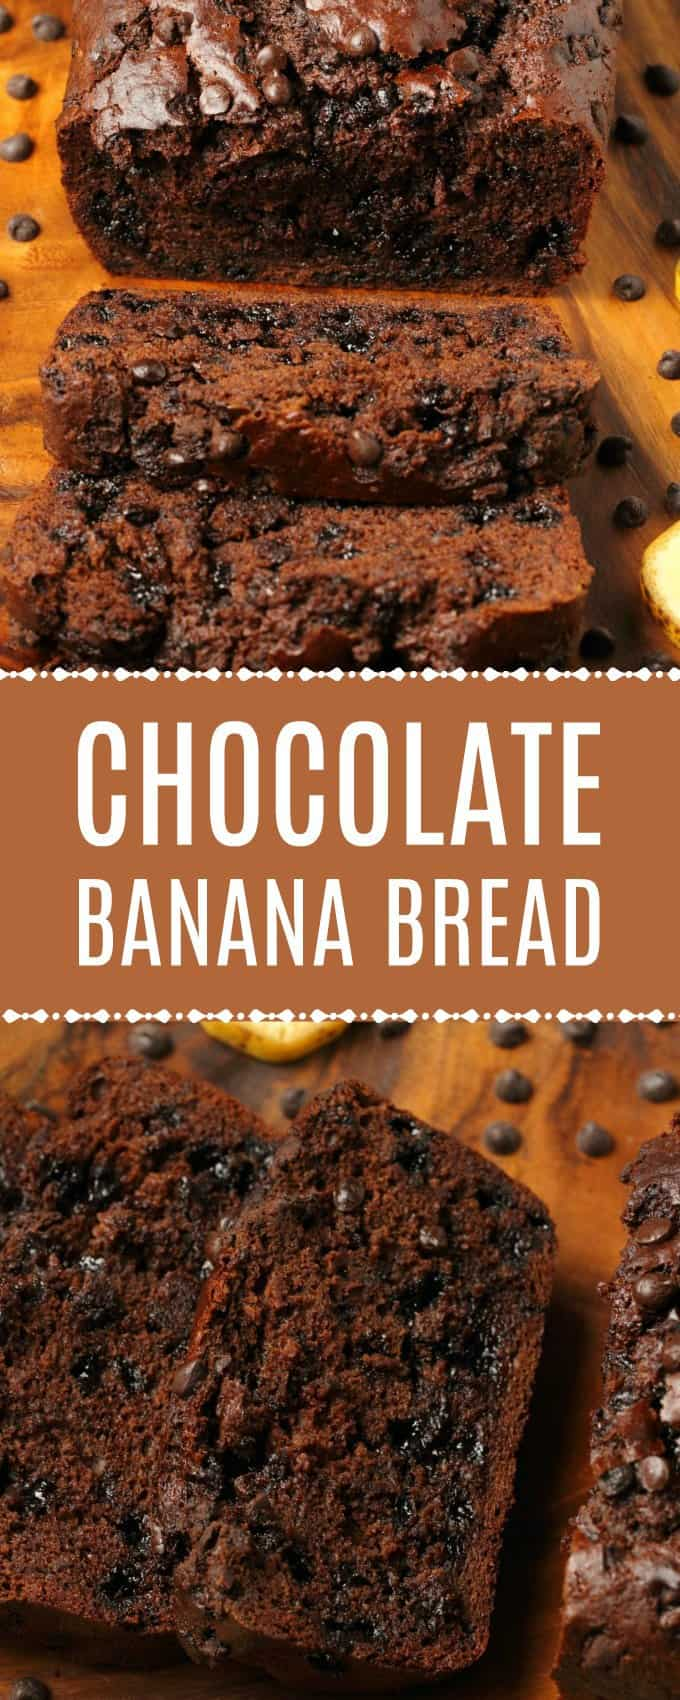 Rich double chocolate vegan chocolate banana bread bursting with chocolate and banana flavor! Moist, decadent and so easy to make, you'll be making this all the time! | lovingitvegan.com